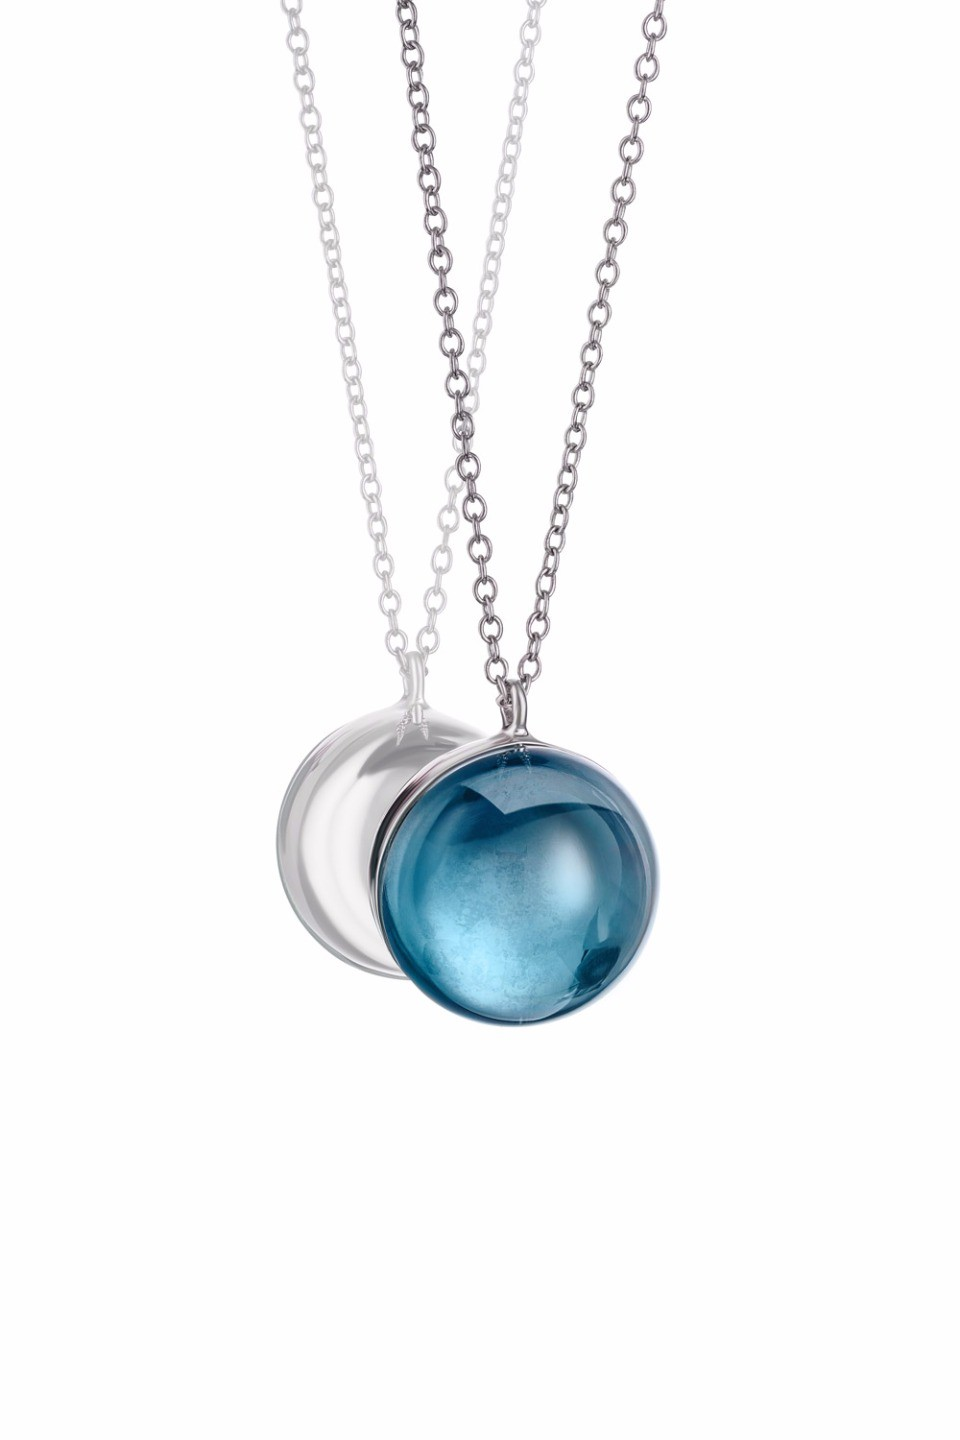 Large Light Blue Lollipop Pendant Necklace